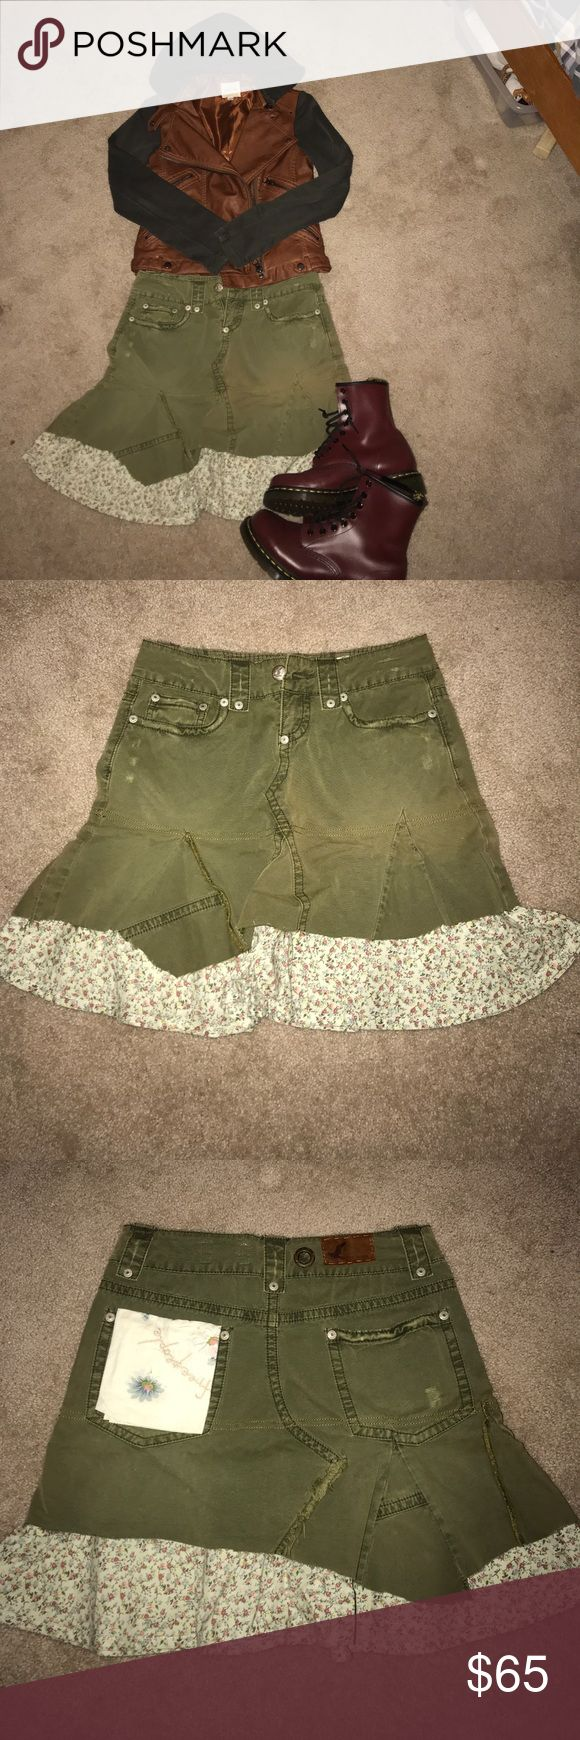 Free people skirt size 26 Very cool free people skirt.  Worn once!  Size 26 but runs small.  Very unique -as most free people clothing items are!- army drab green with floral shabby chic layer underneath the distressed asymmetrical green skirt.  Removable shabby chic handkerchief in the right pocket.  I wouldn't remove it.  It adds to the uniqueness of the skirt! I love this, I just never wore it as I'm not much of a skirt person. Free People Skirts Midi